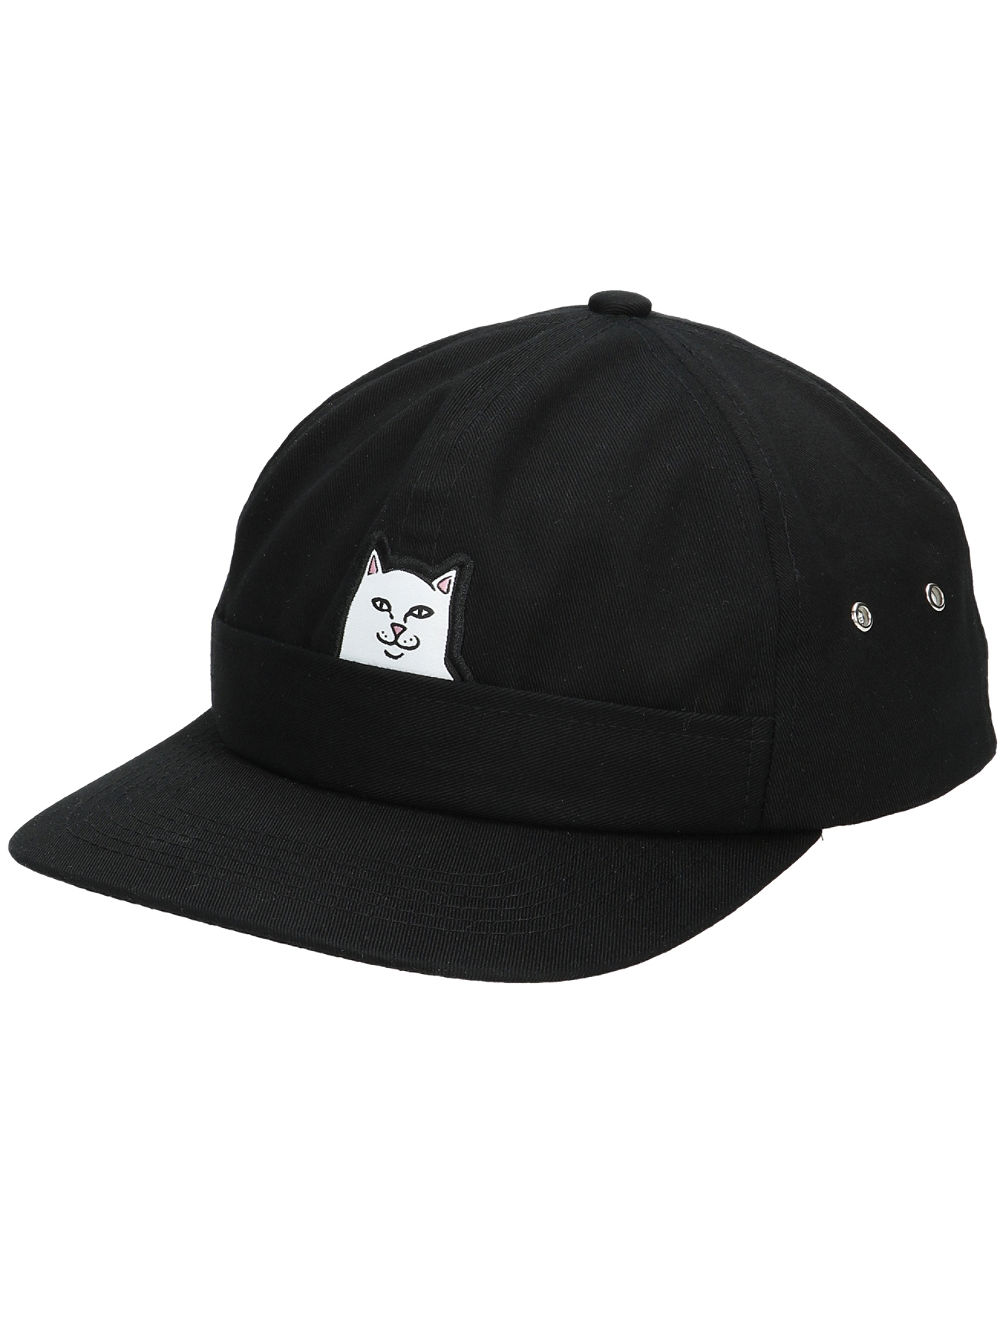 Lord Nermal 6 Panel Pocket Cap